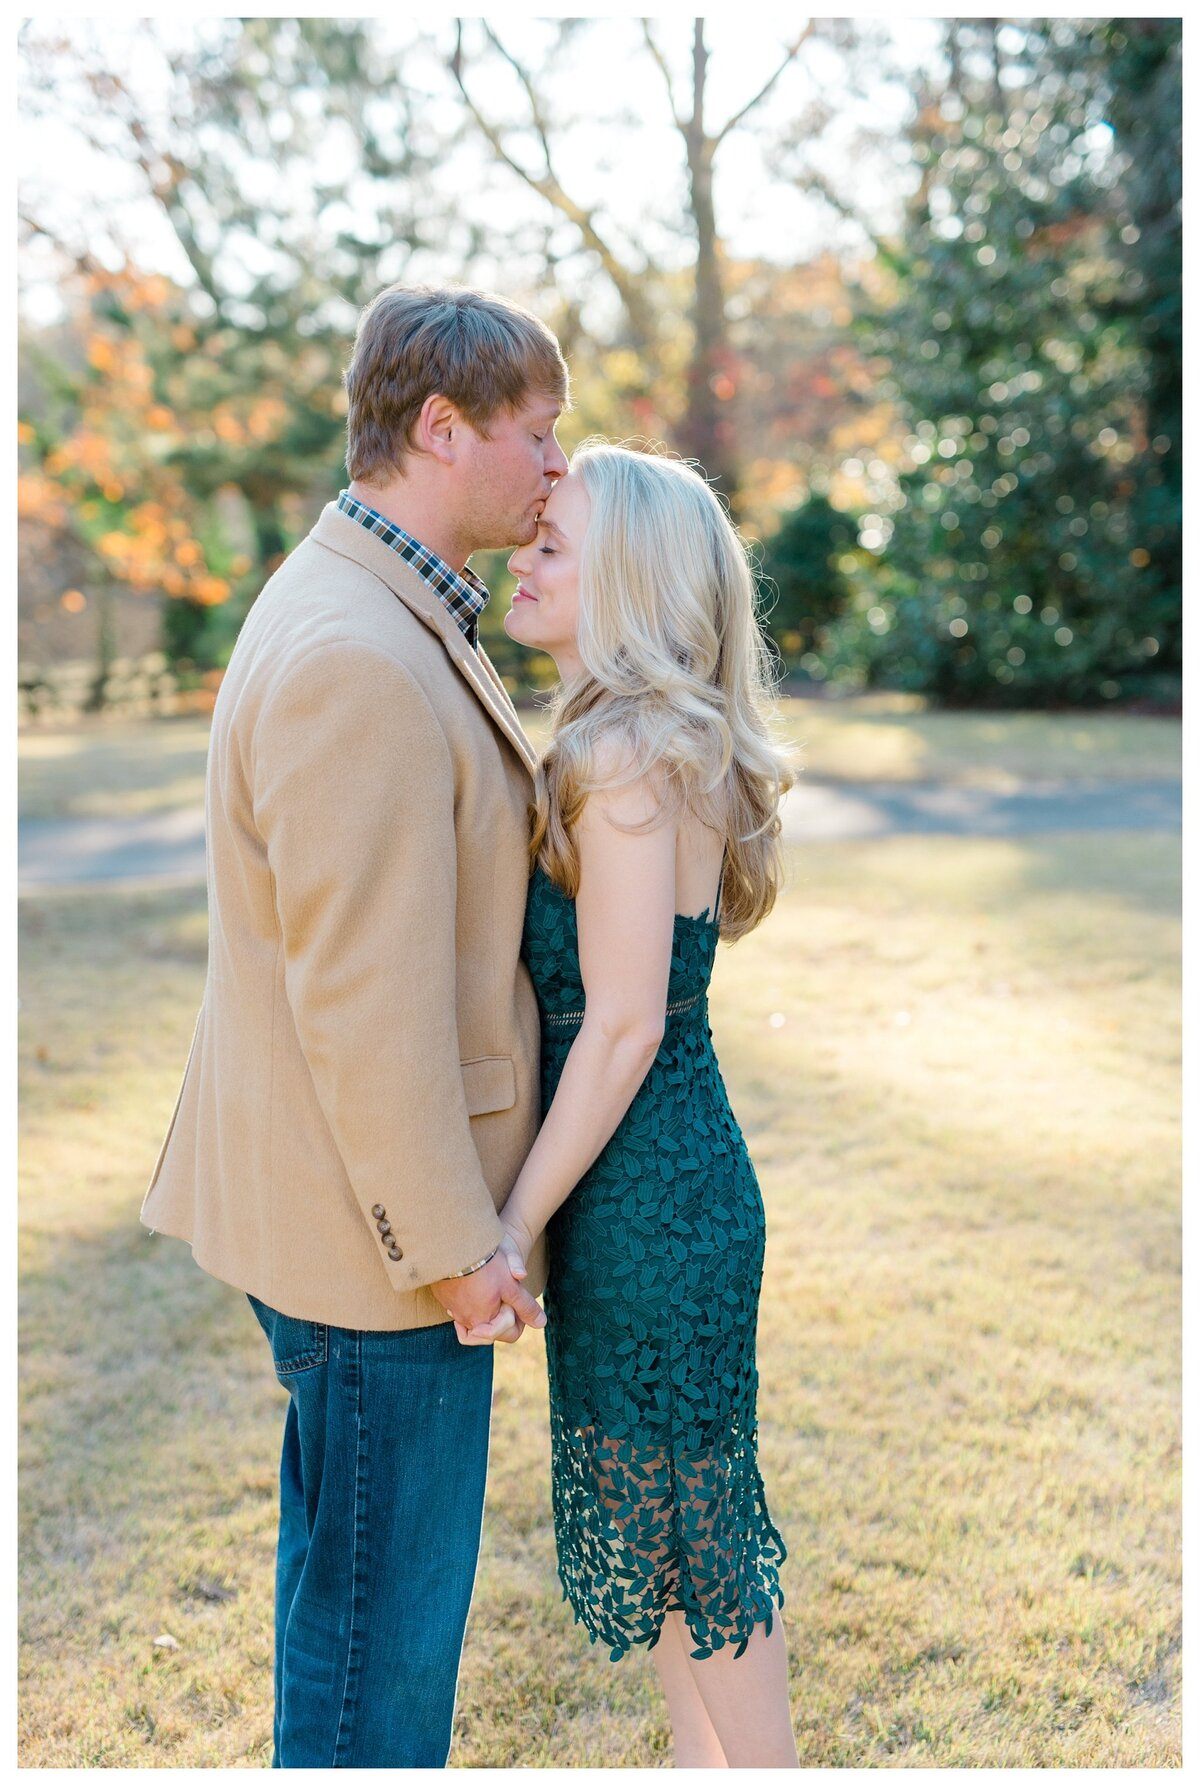 canady-engagements-atlanta-wedding-photographer-14